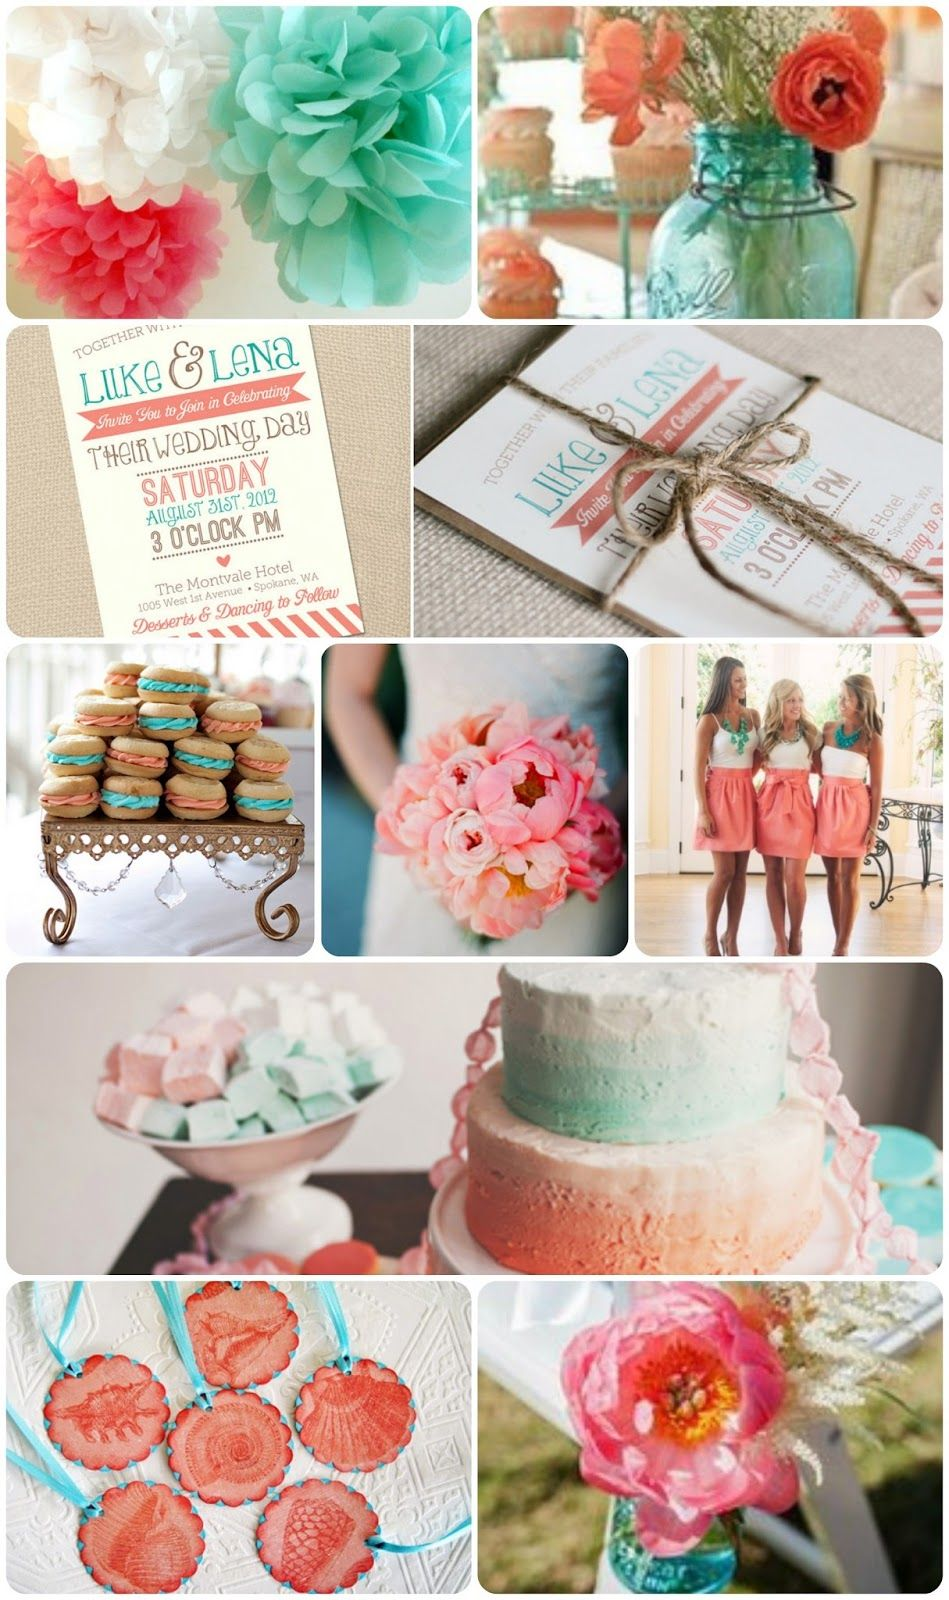 Bride To Be Fitness: Coral & Turquoise Wedding Inspiration | Ideas ...